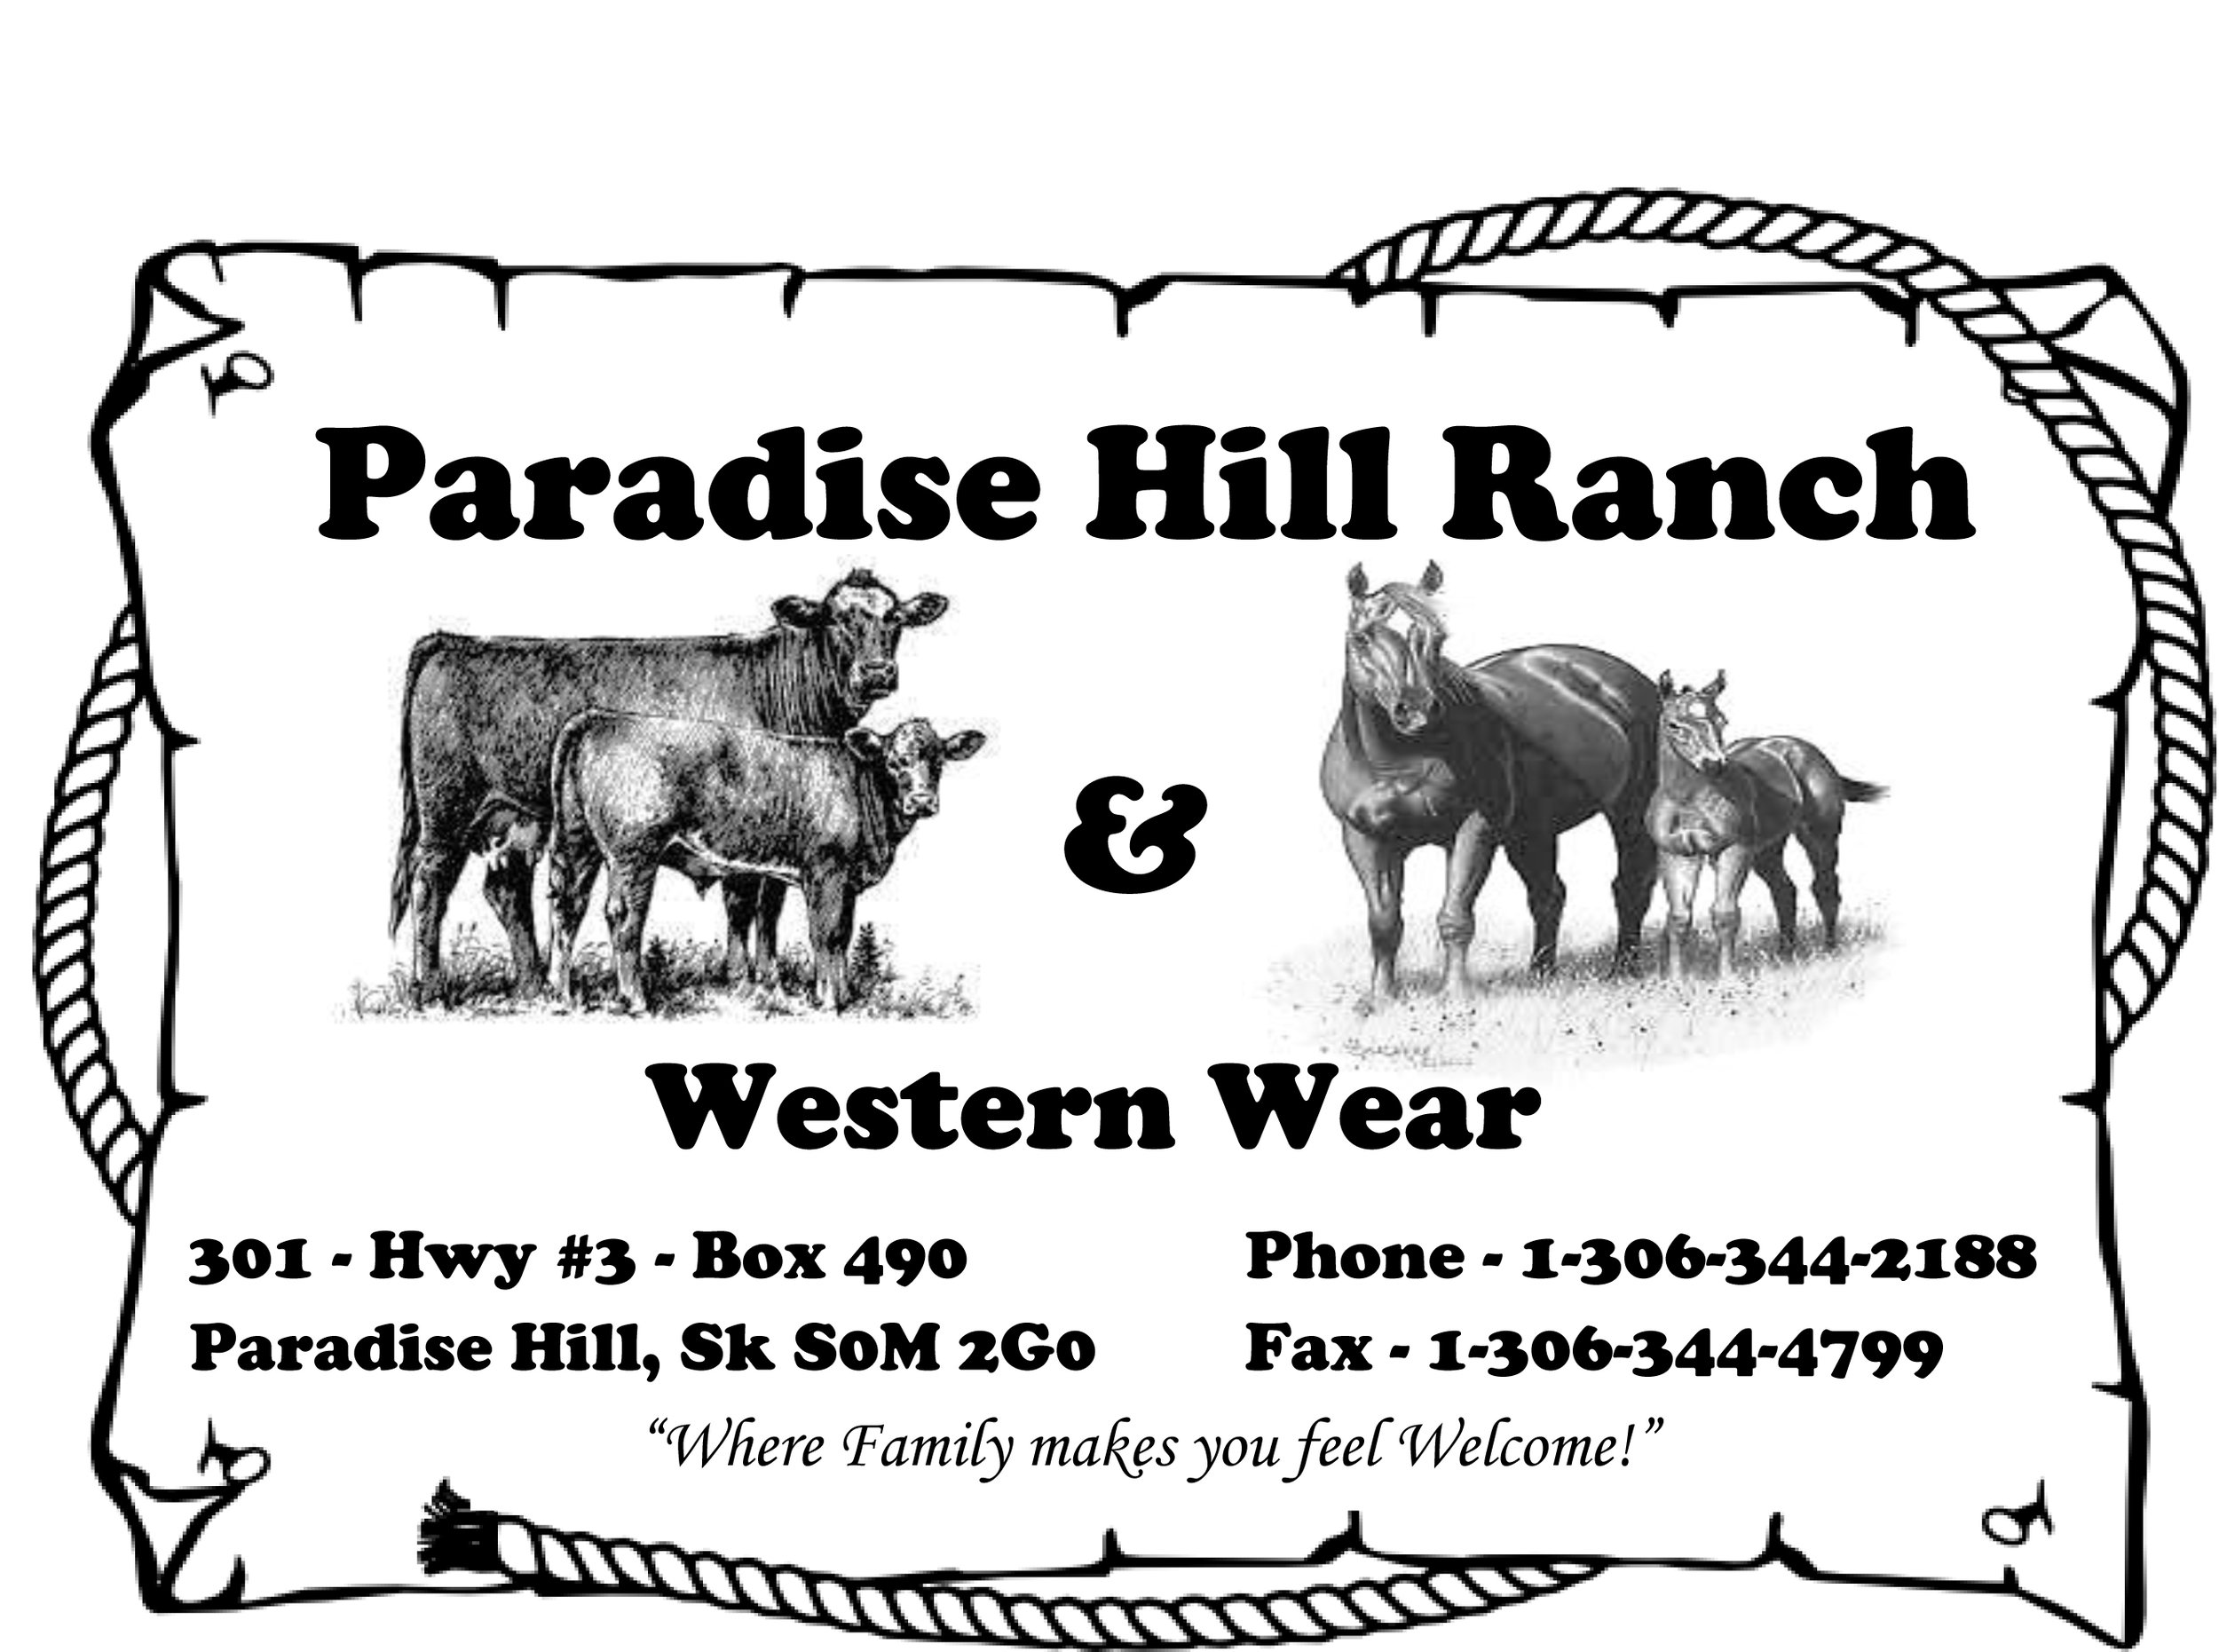 Paradise Hill Ranch and Western Wear.jpg